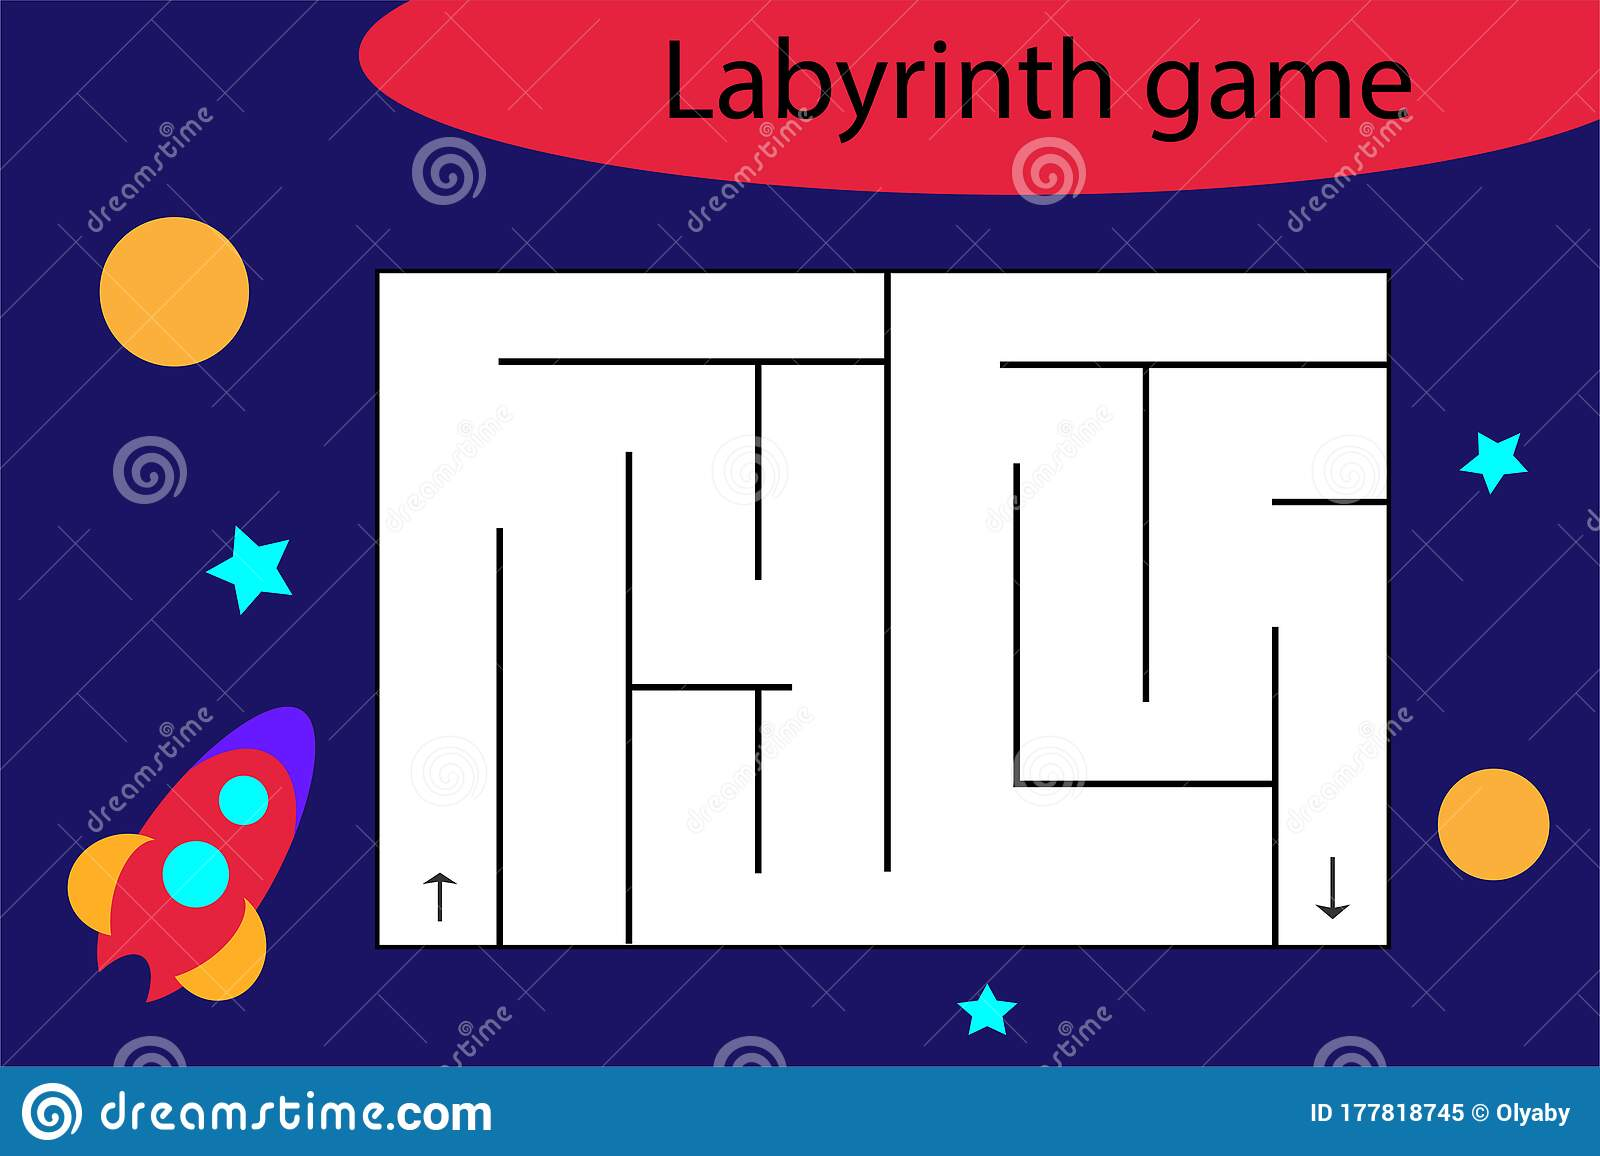 Labyrinth Game With Rocket Fun Education Worksheet For